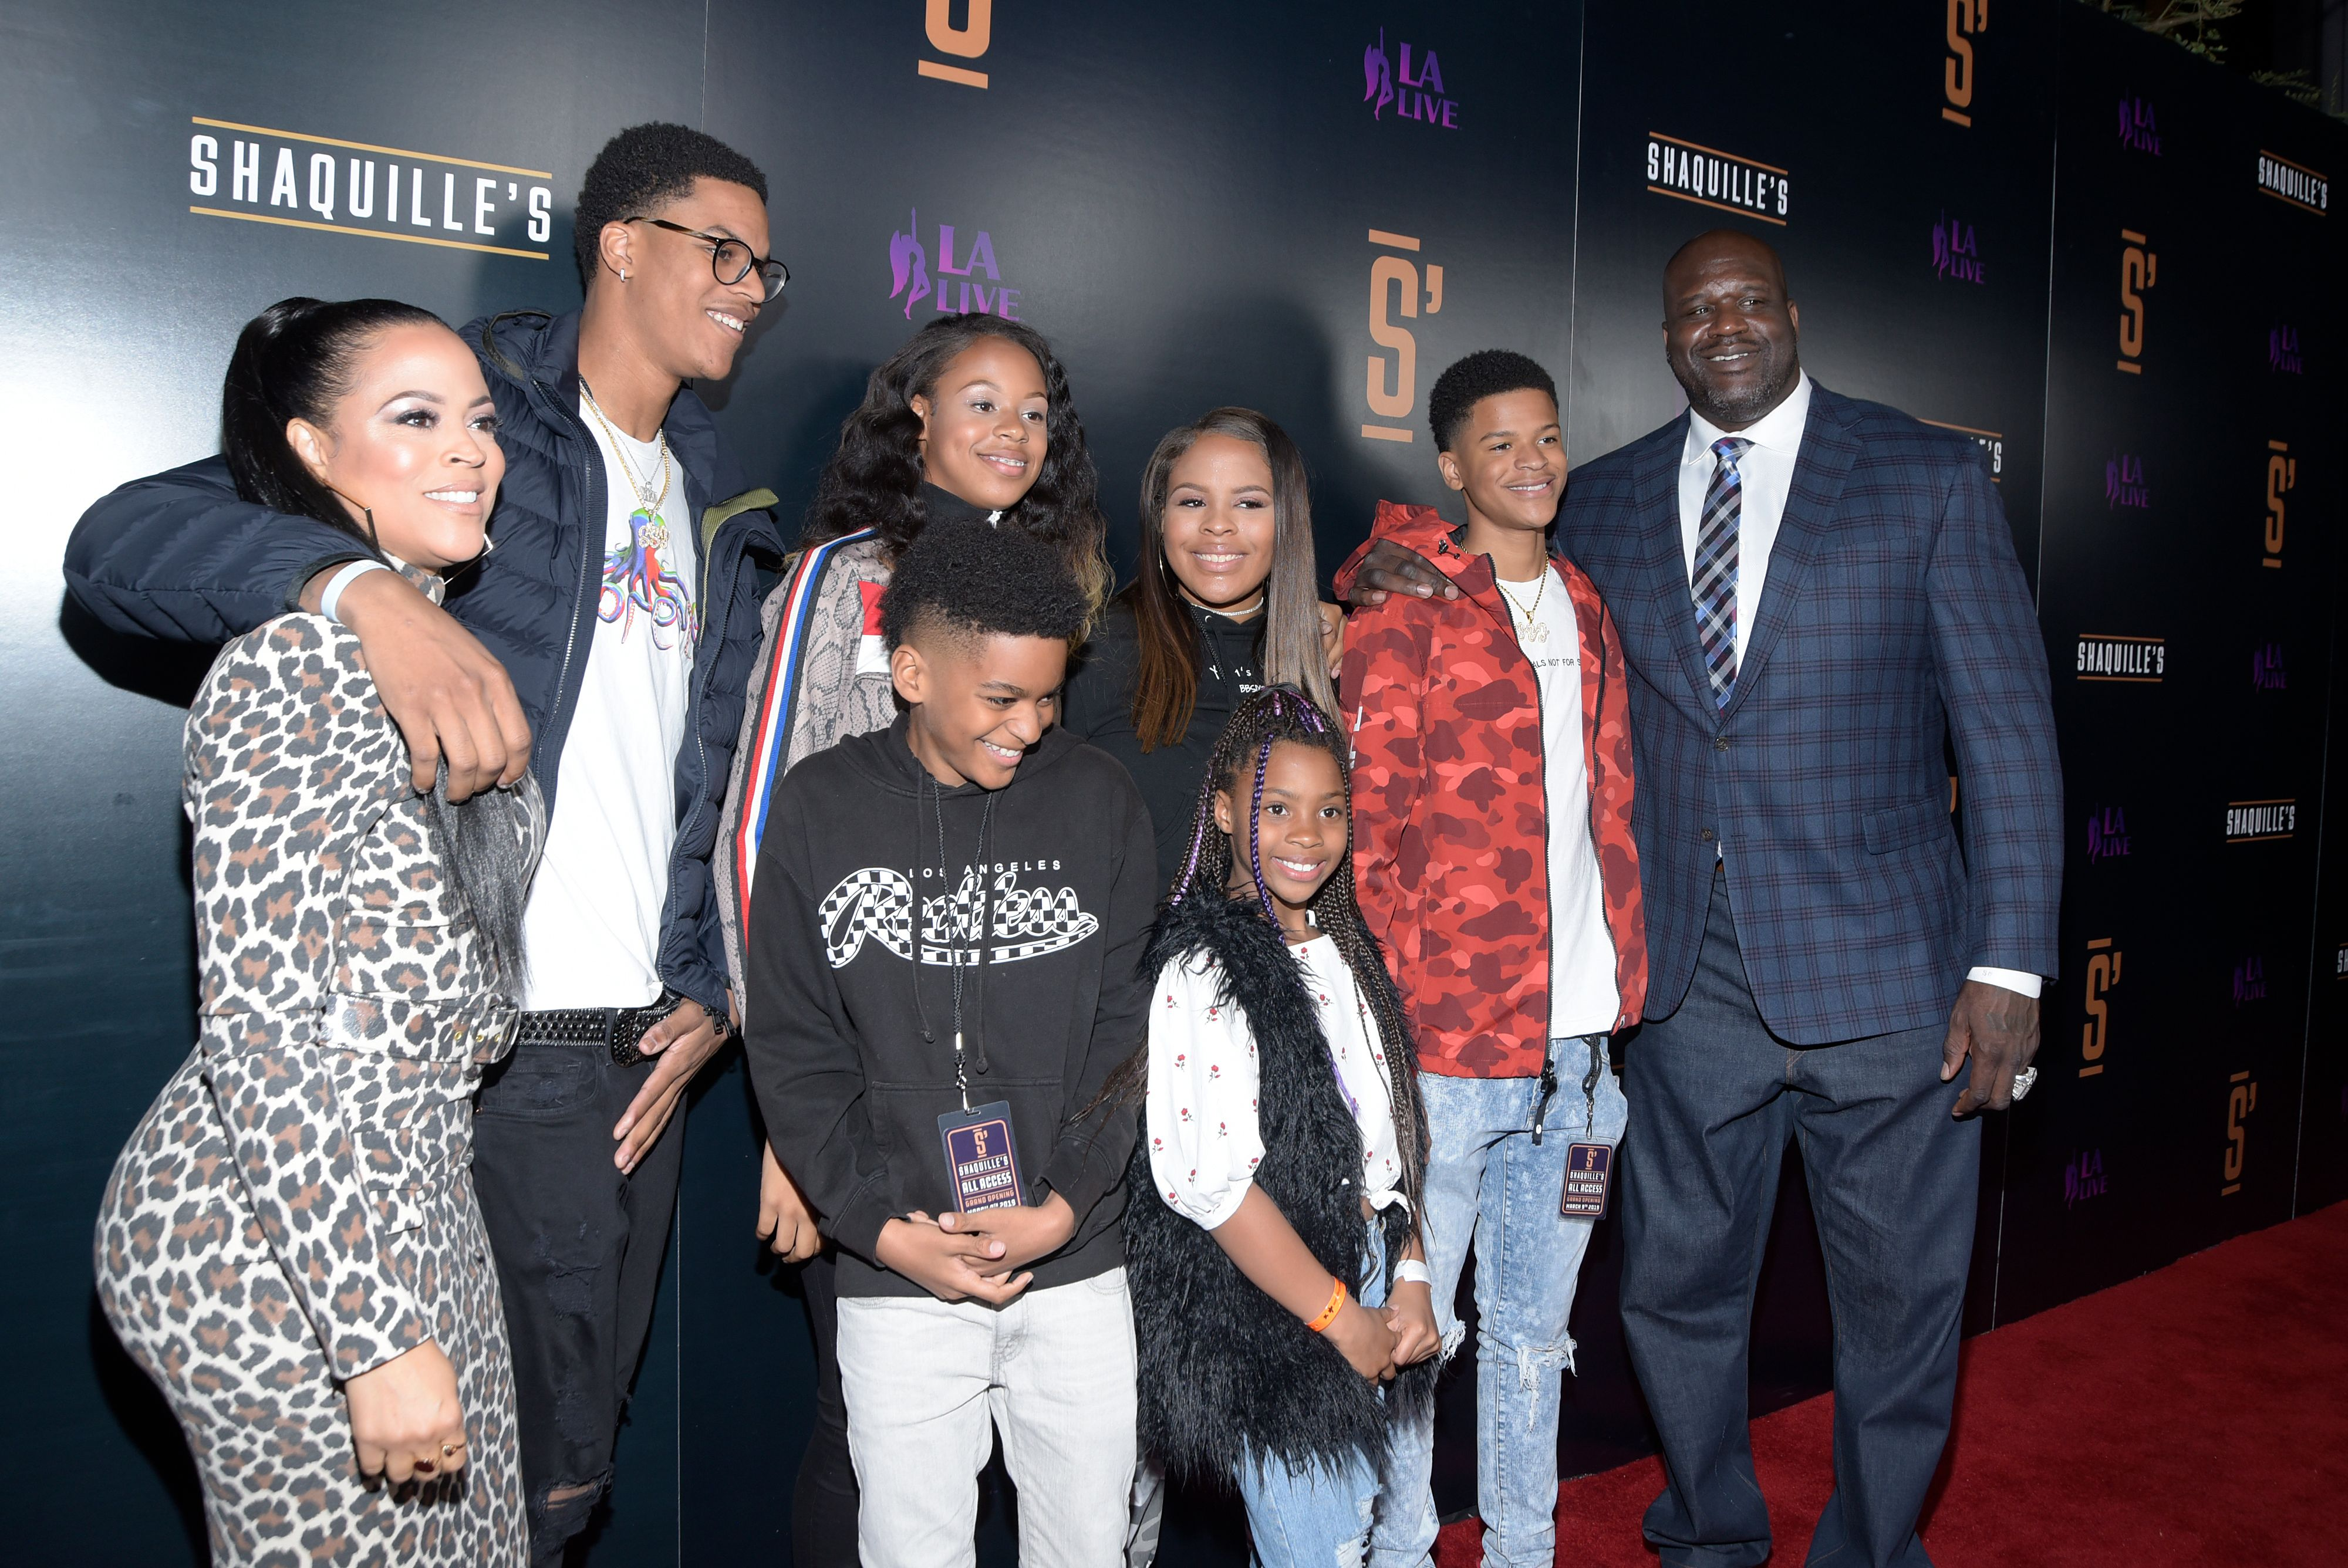 Shaunie, Shaquille O'Neal (R) and family at the opening of Shaquille's At L.A. on March 09, 2019 in Los Angeles.   Photo: Getty Images